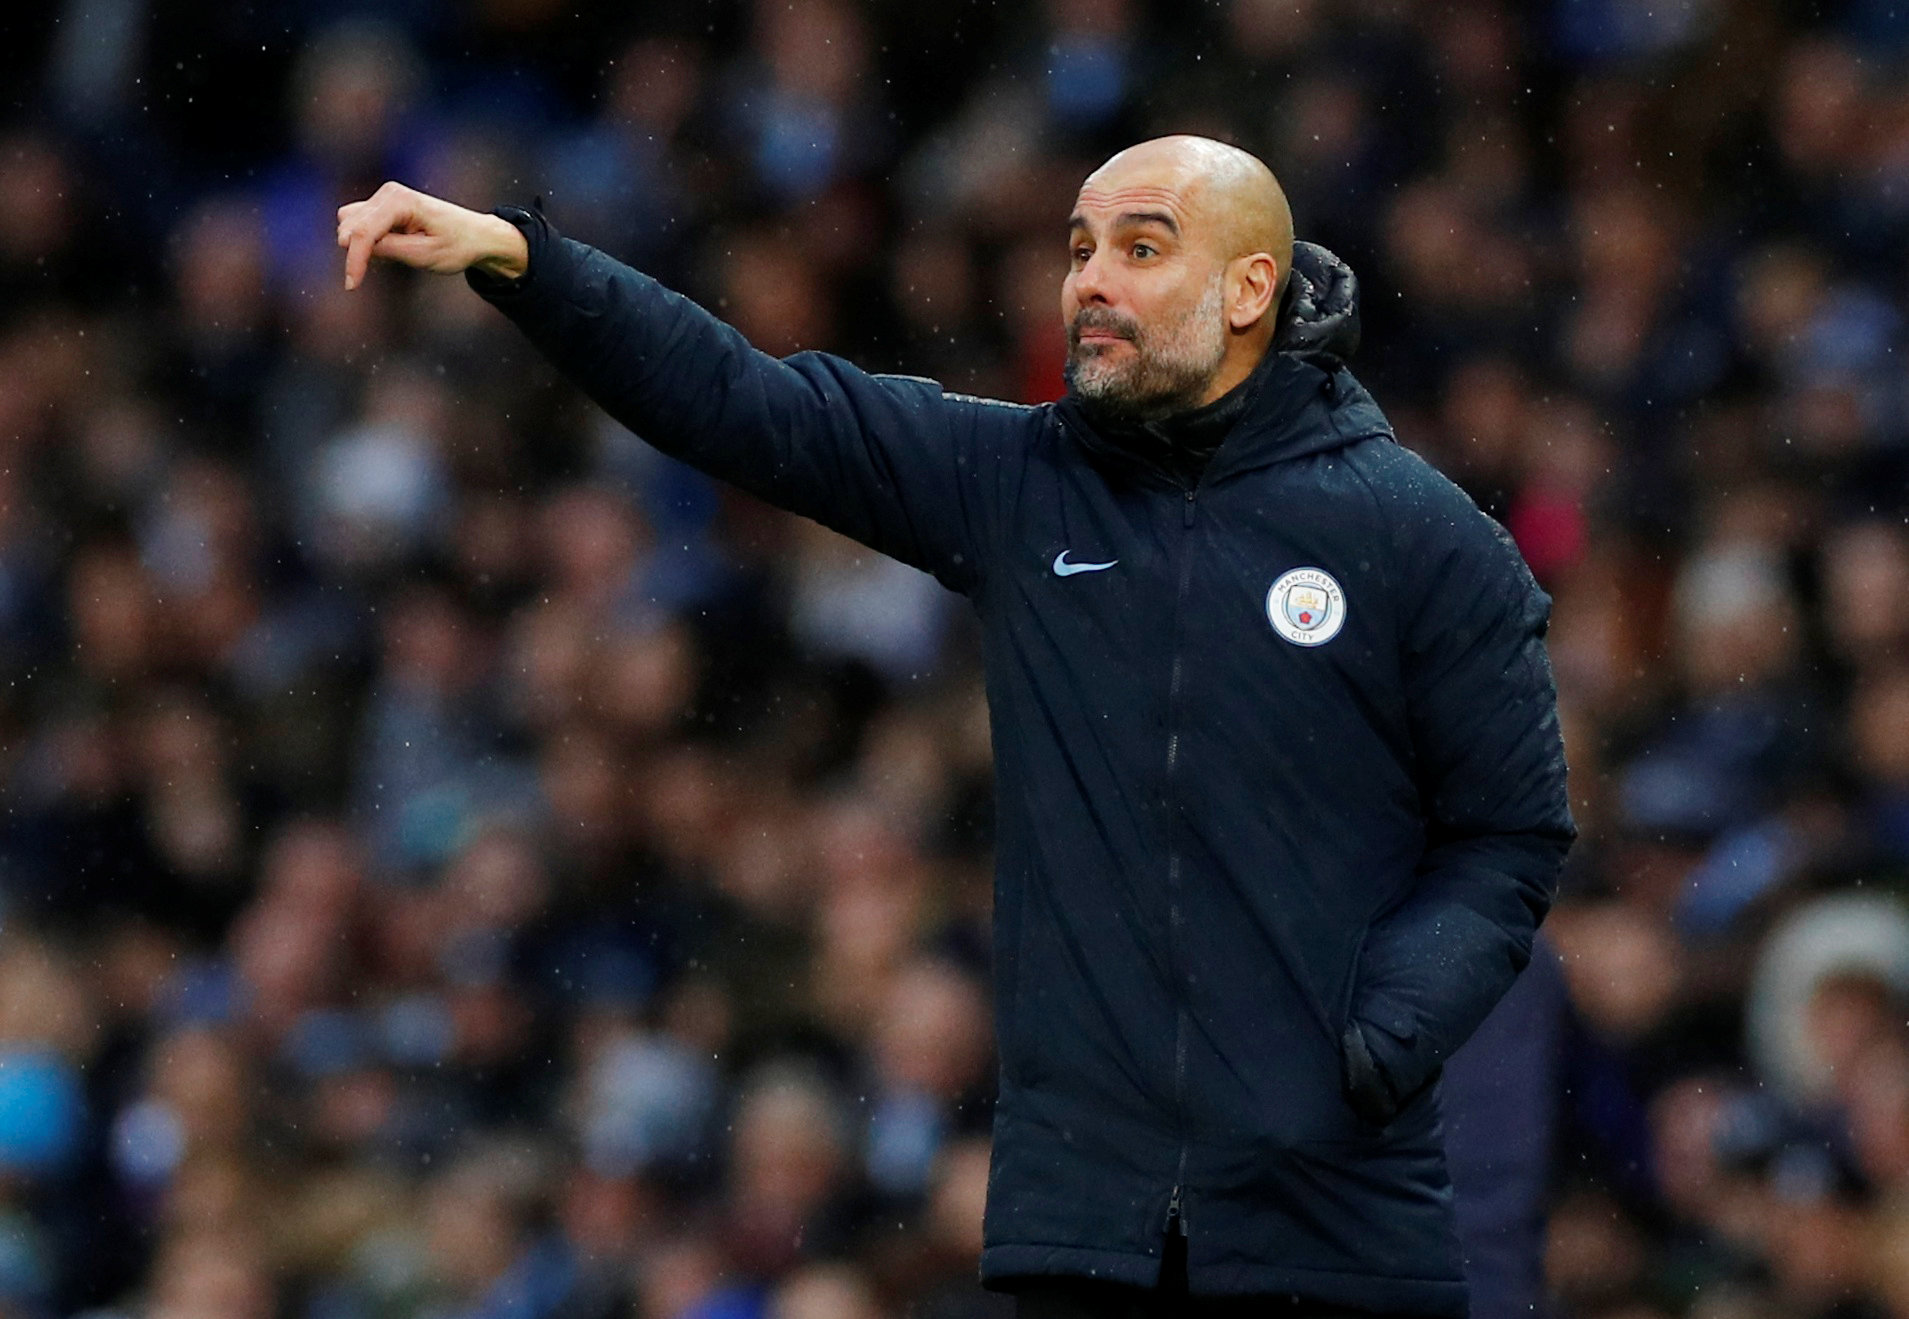 → Who was the highest-scoring Man City player (in terms of overall FPL points) in Pep Guardiola's first season in charge at the Etihad?